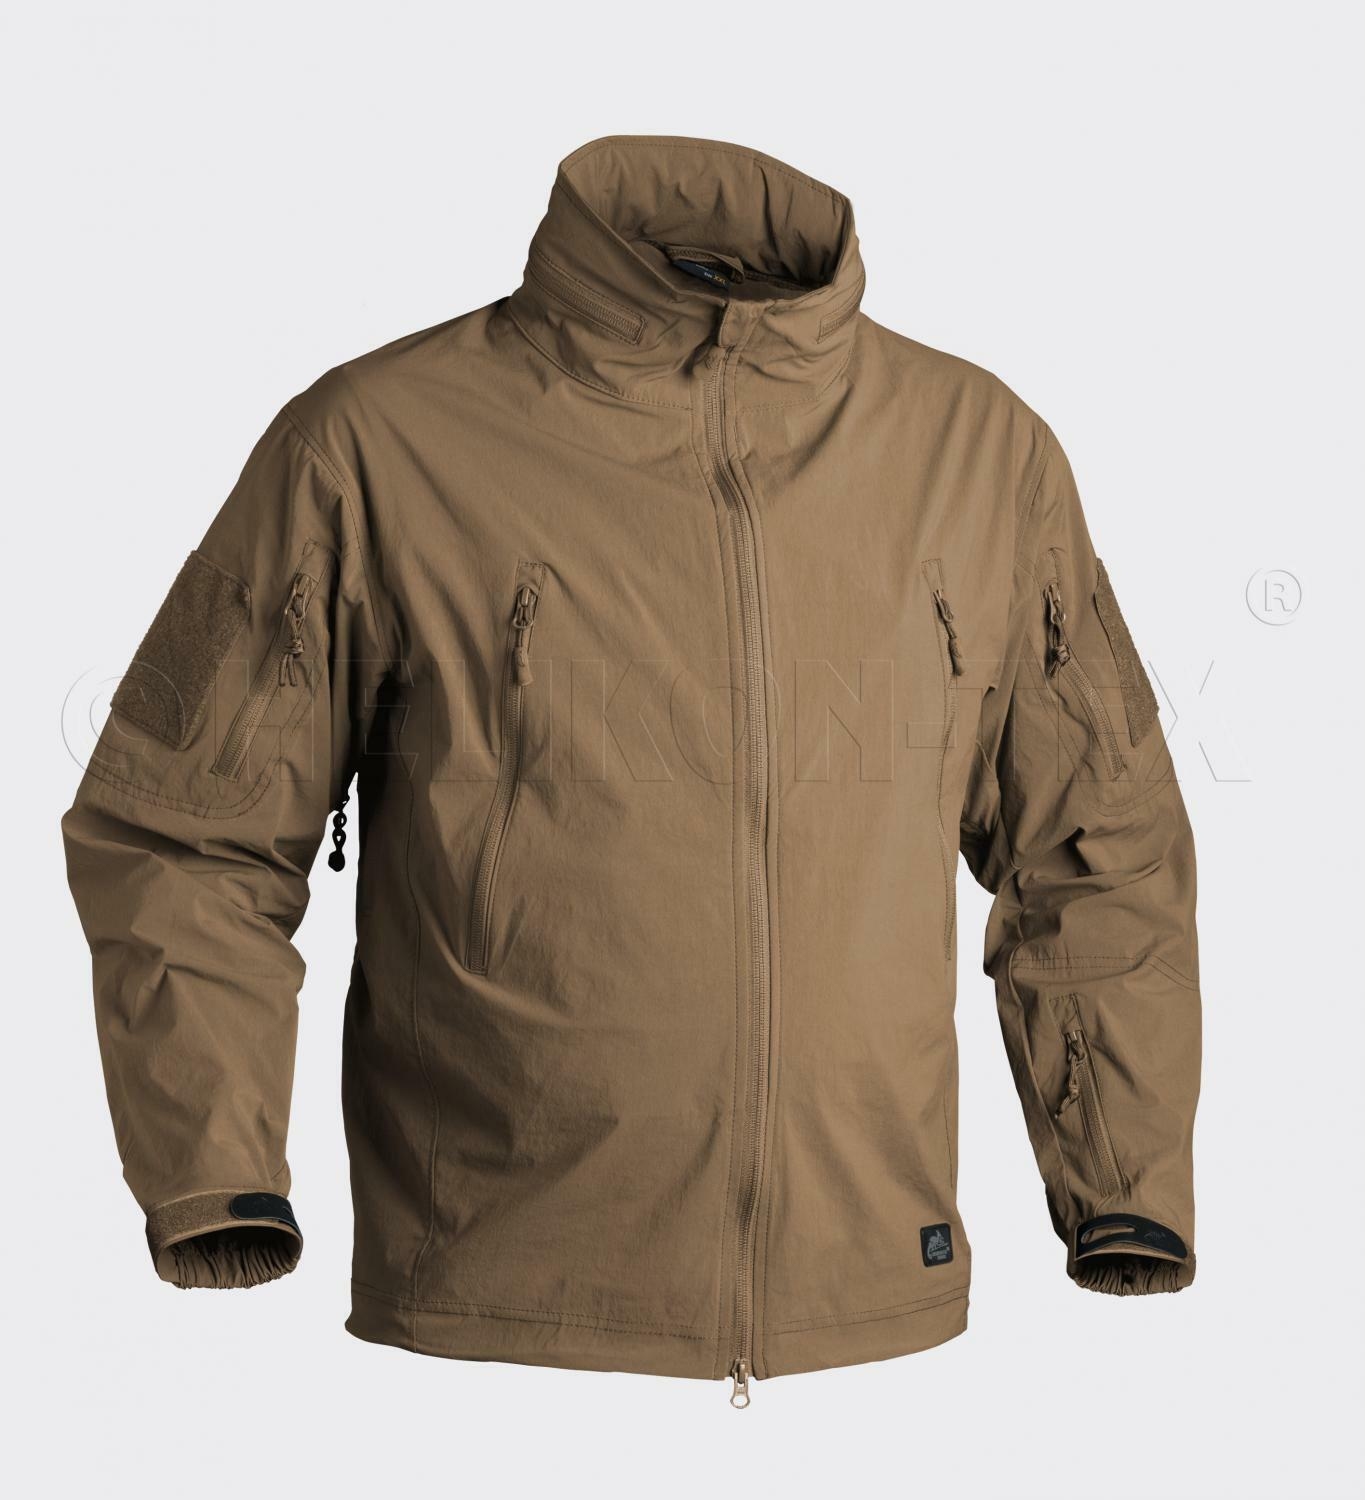 HELIKON tex  Trooper Lightweight soft shell Al aire libre Jacket chaqueta coyote large  soporte minorista mayorista